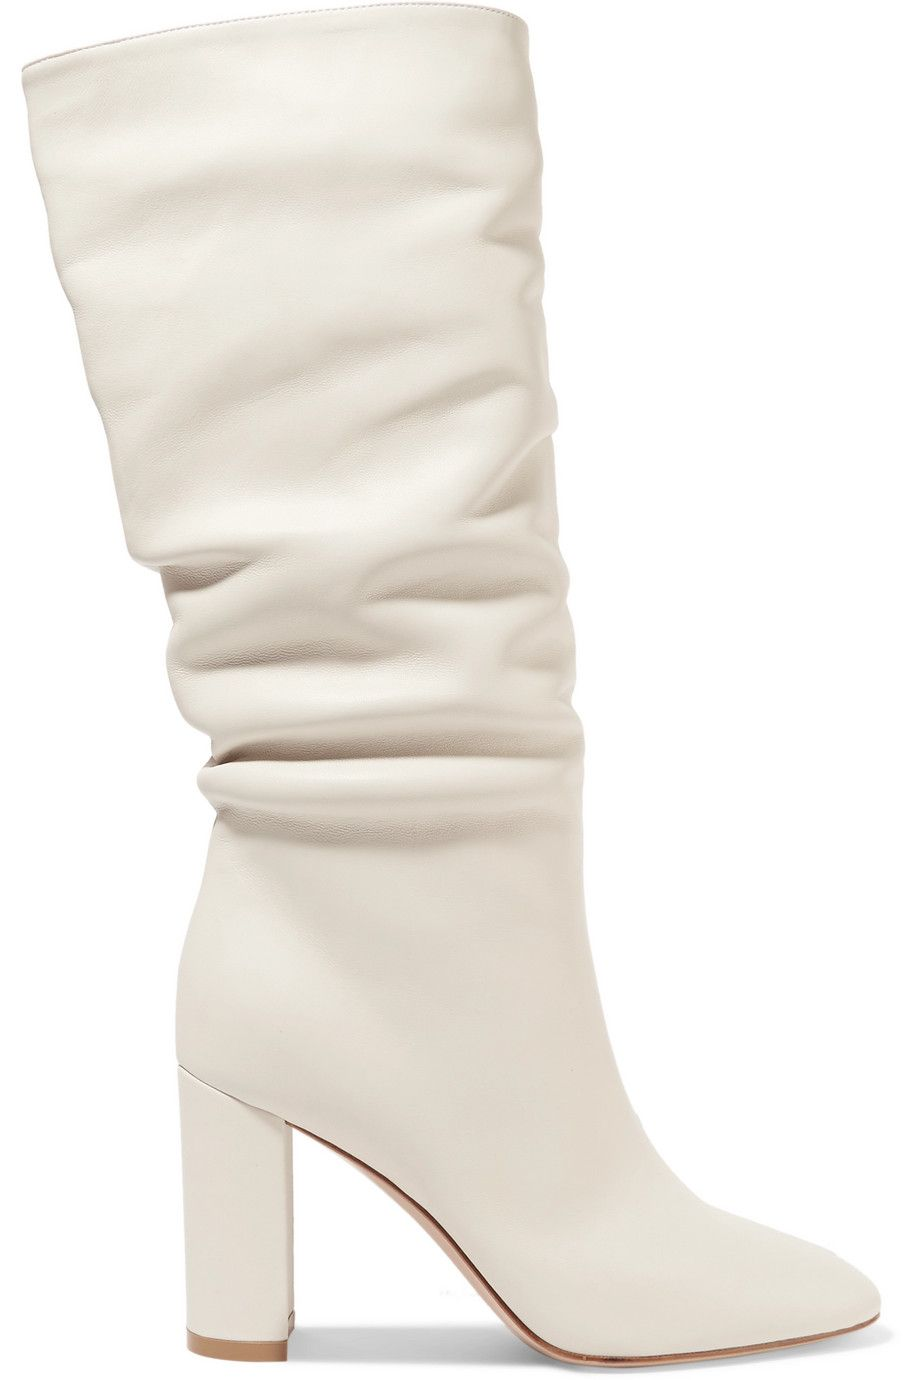 820238fe112 25 Pairs of the Perfect White Boots-White Boot Trend at all Prices